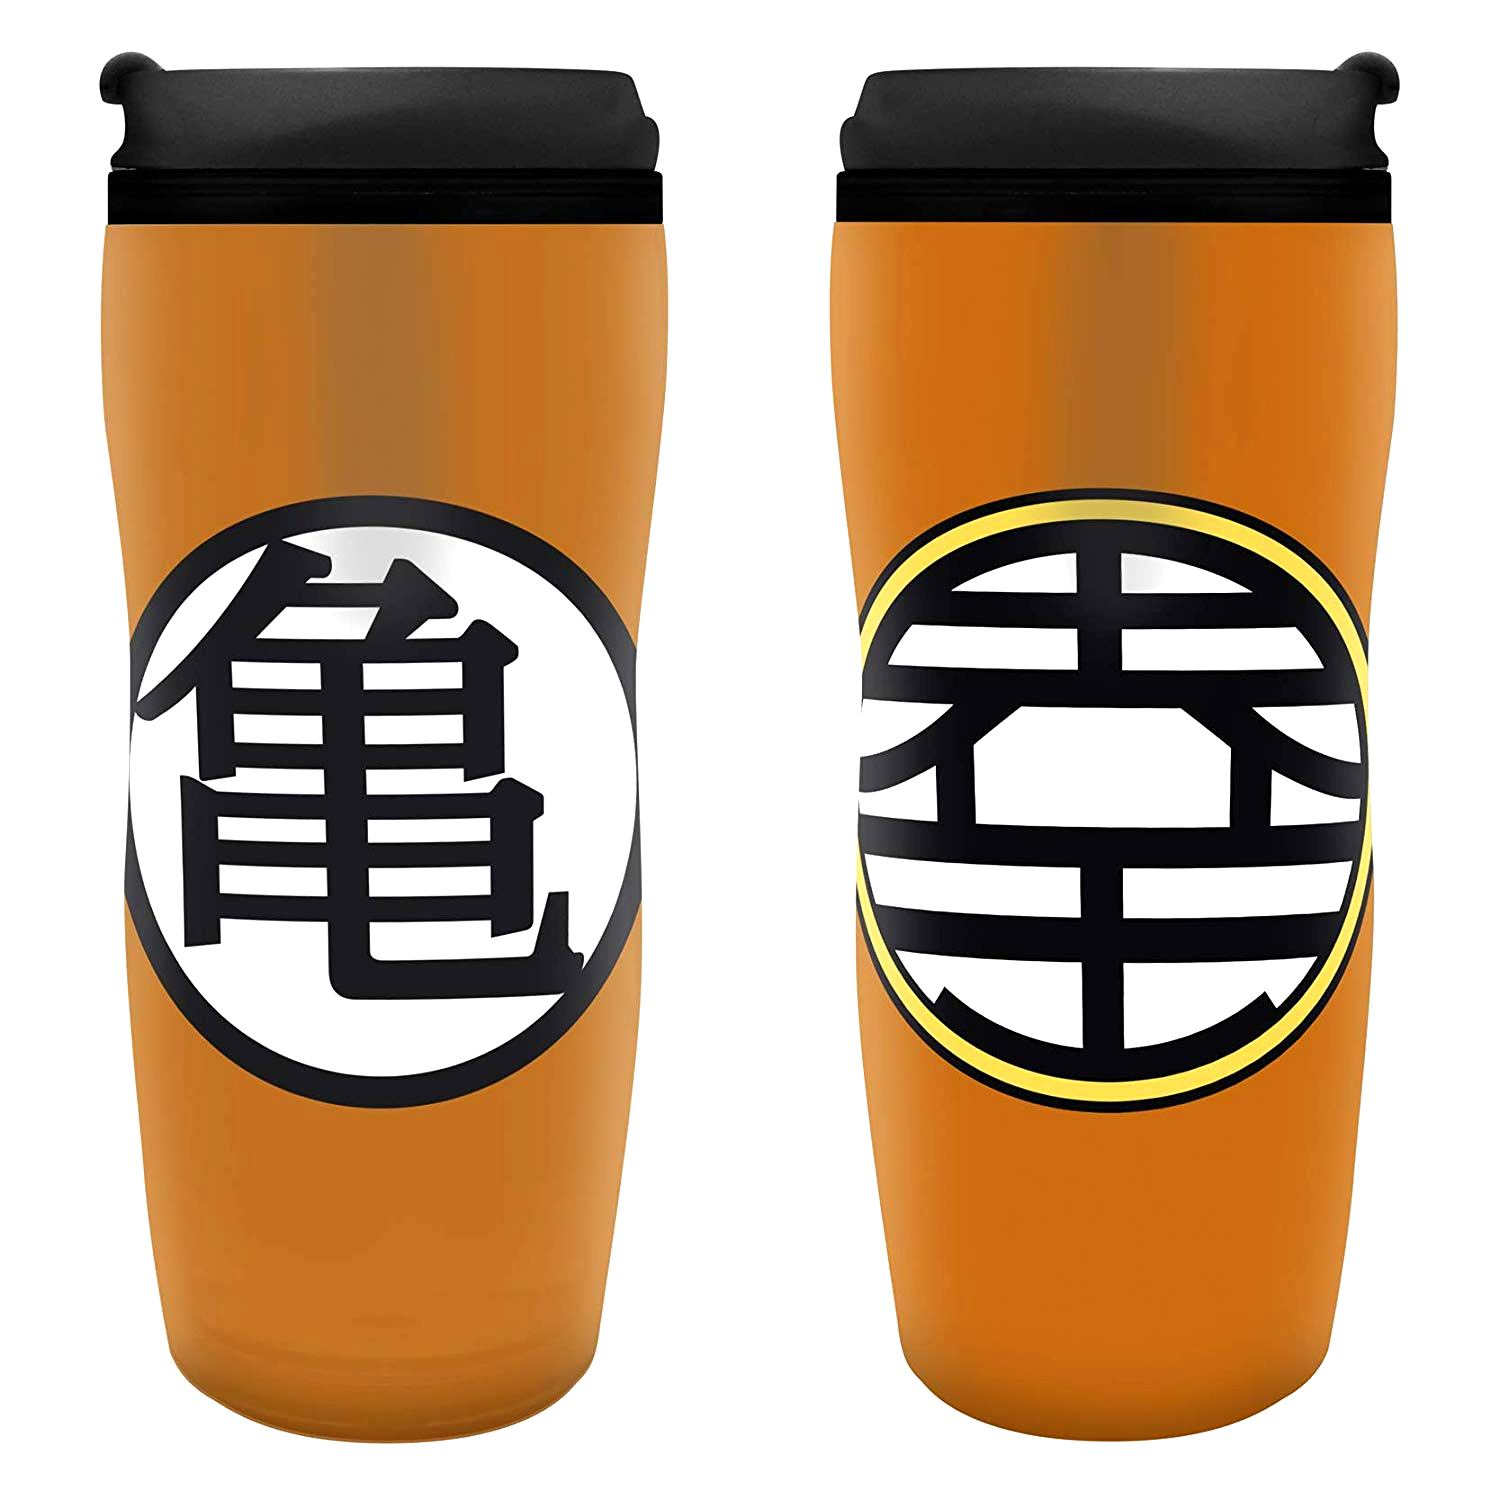 Details Ball Travel Abystyle 18in Thermos 7 Dragon Kame Mug About Glass Tumbler m0Nnwv8O